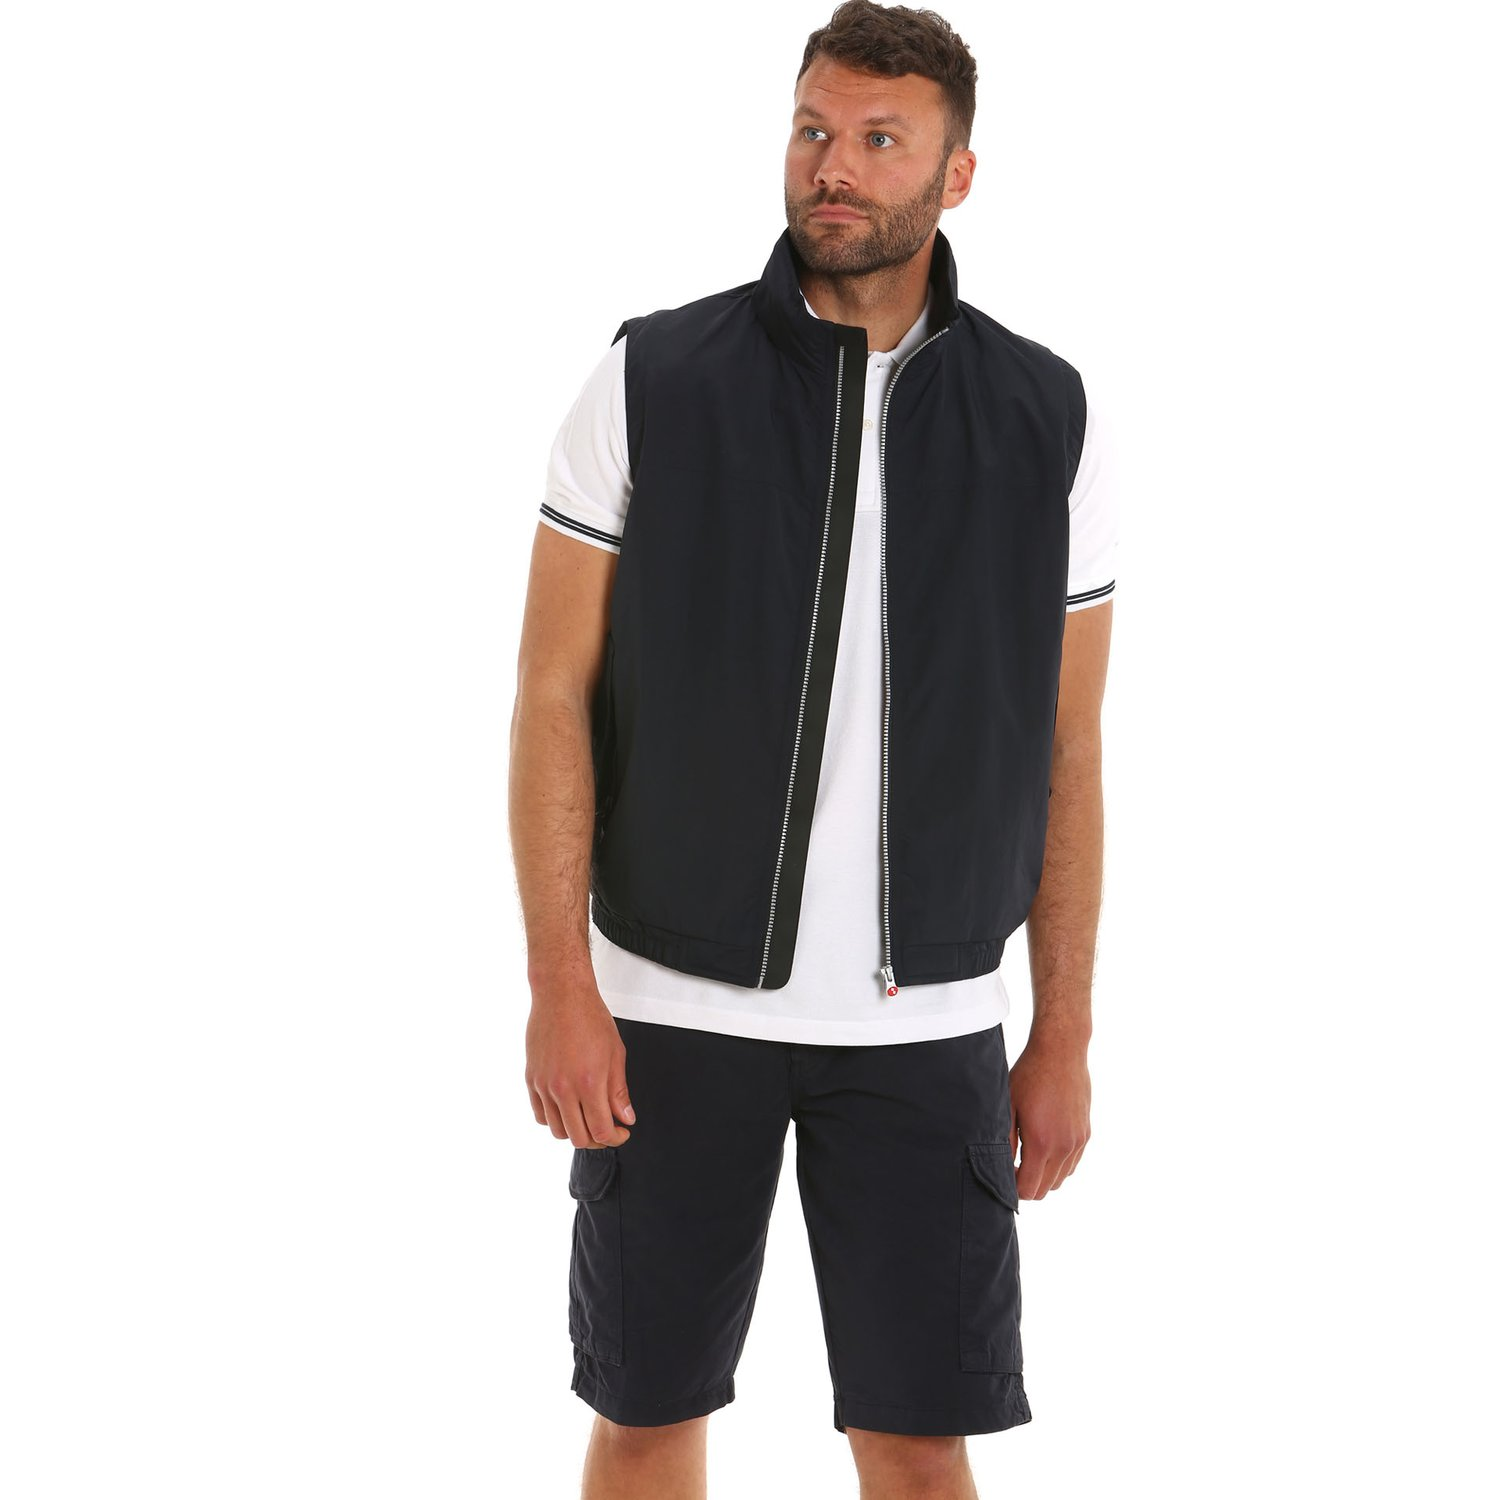 Summer Sailing Vest 2.1 - Navy